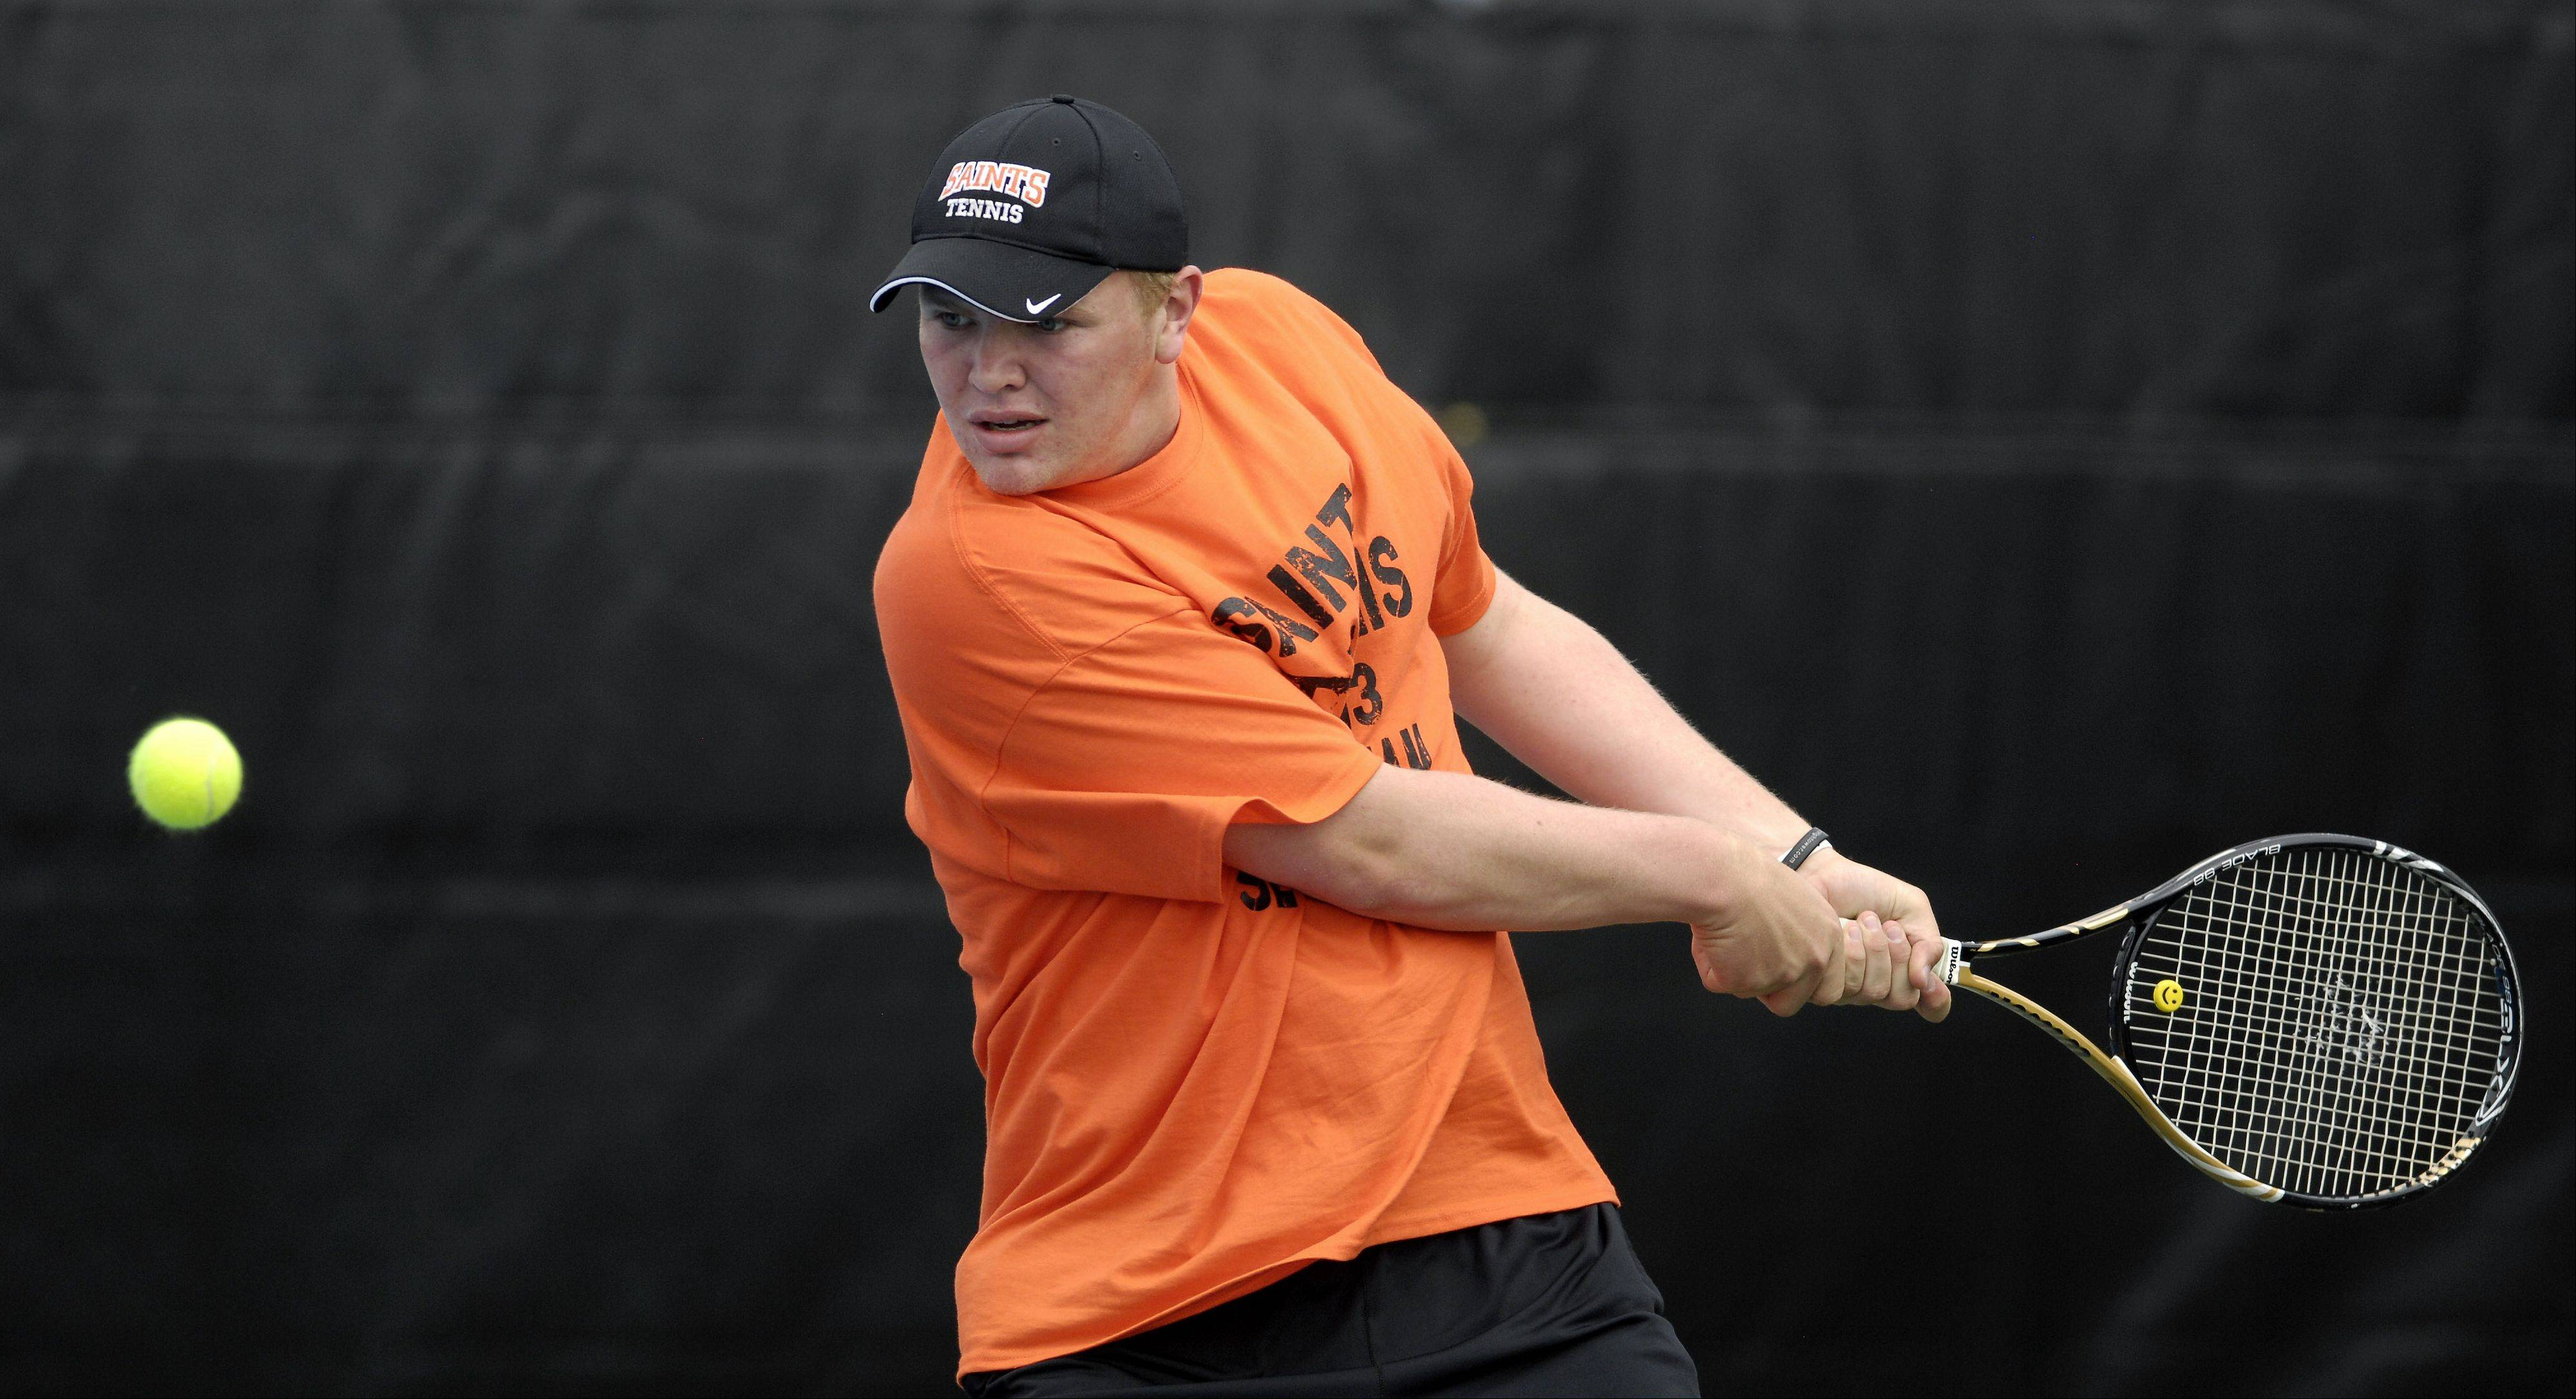 St. Charles East's Jasper Koenen readies his backhand during sectional tennis action at St. Charles North High School Friday.